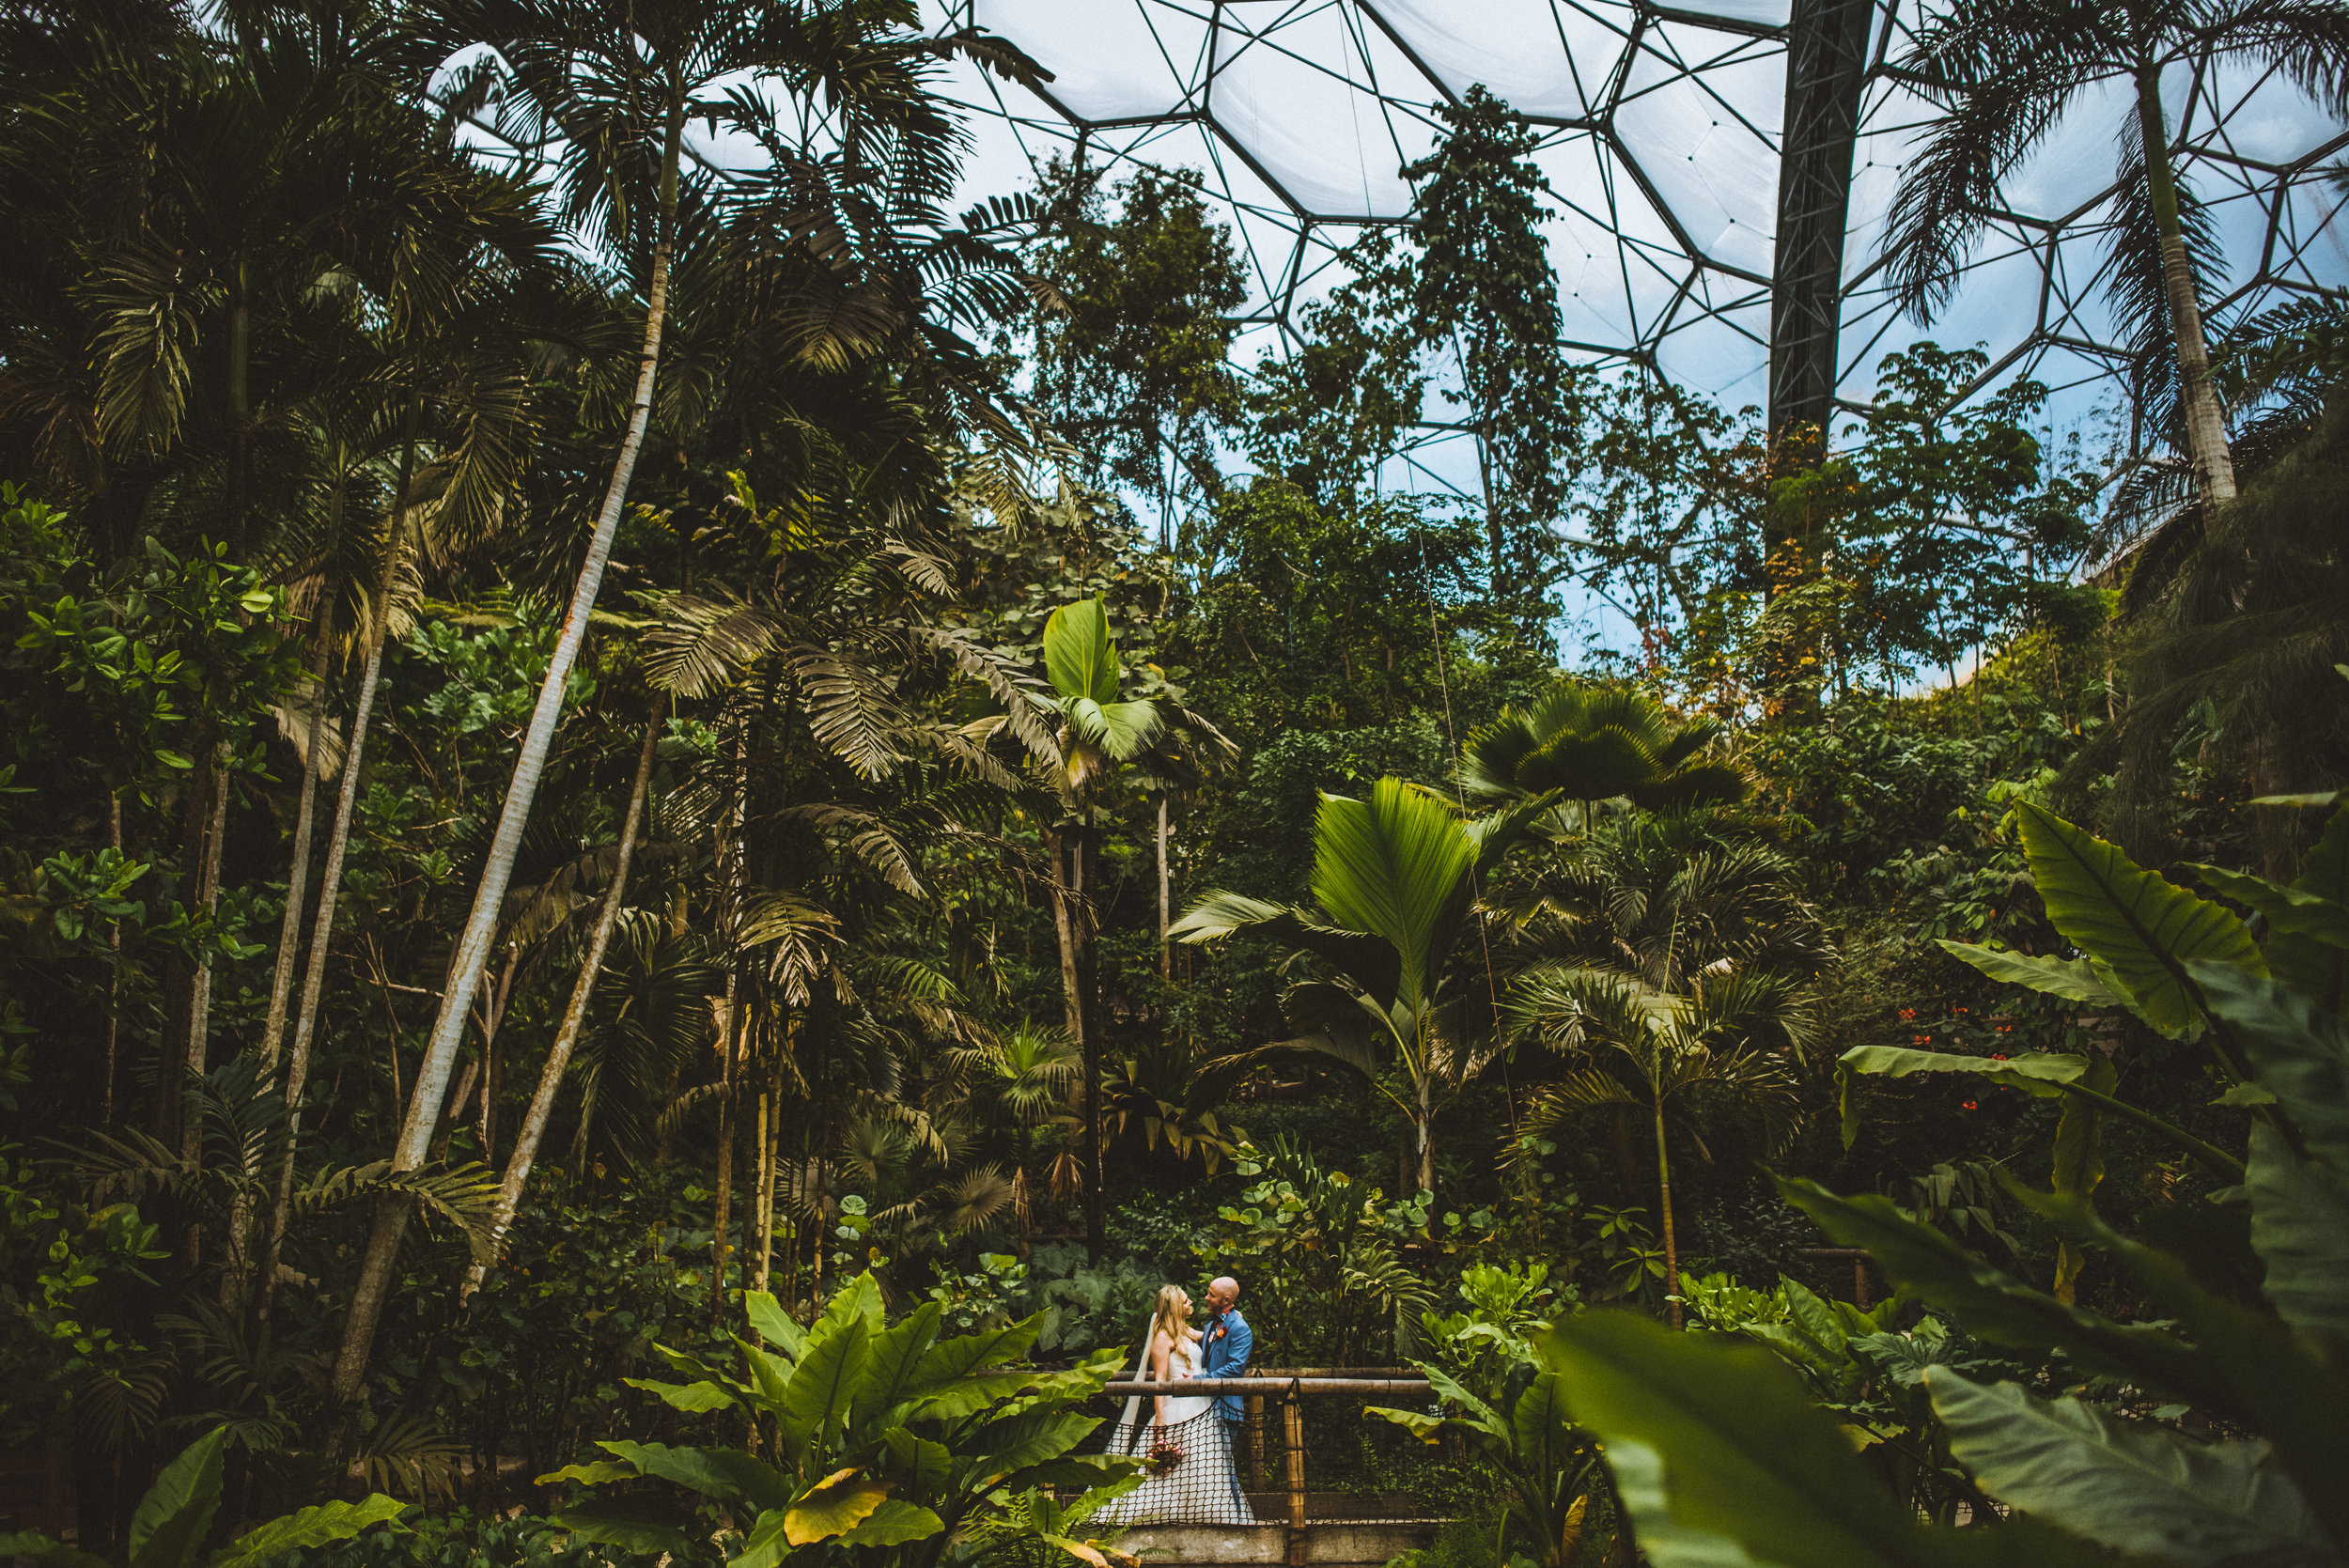 wedding-photographer-eden-project-2.jpg